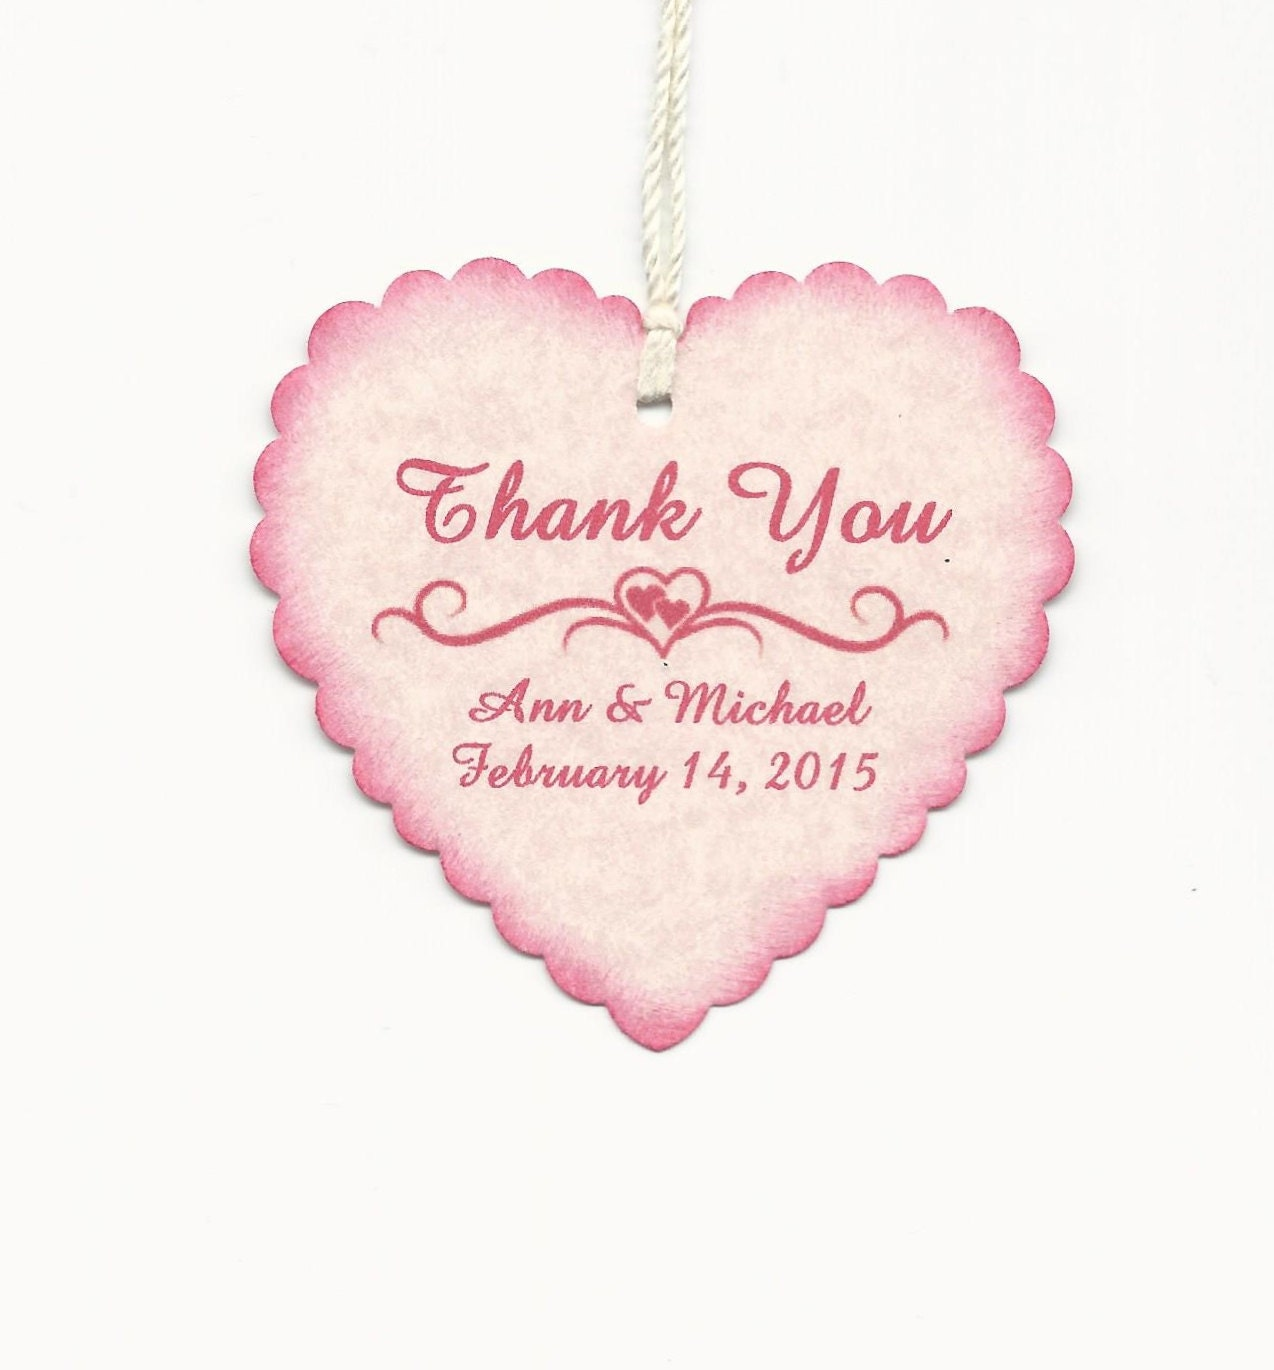 50 PERSONALIZED PINK Heart Shaped Thank you Tag Valentine | Etsy